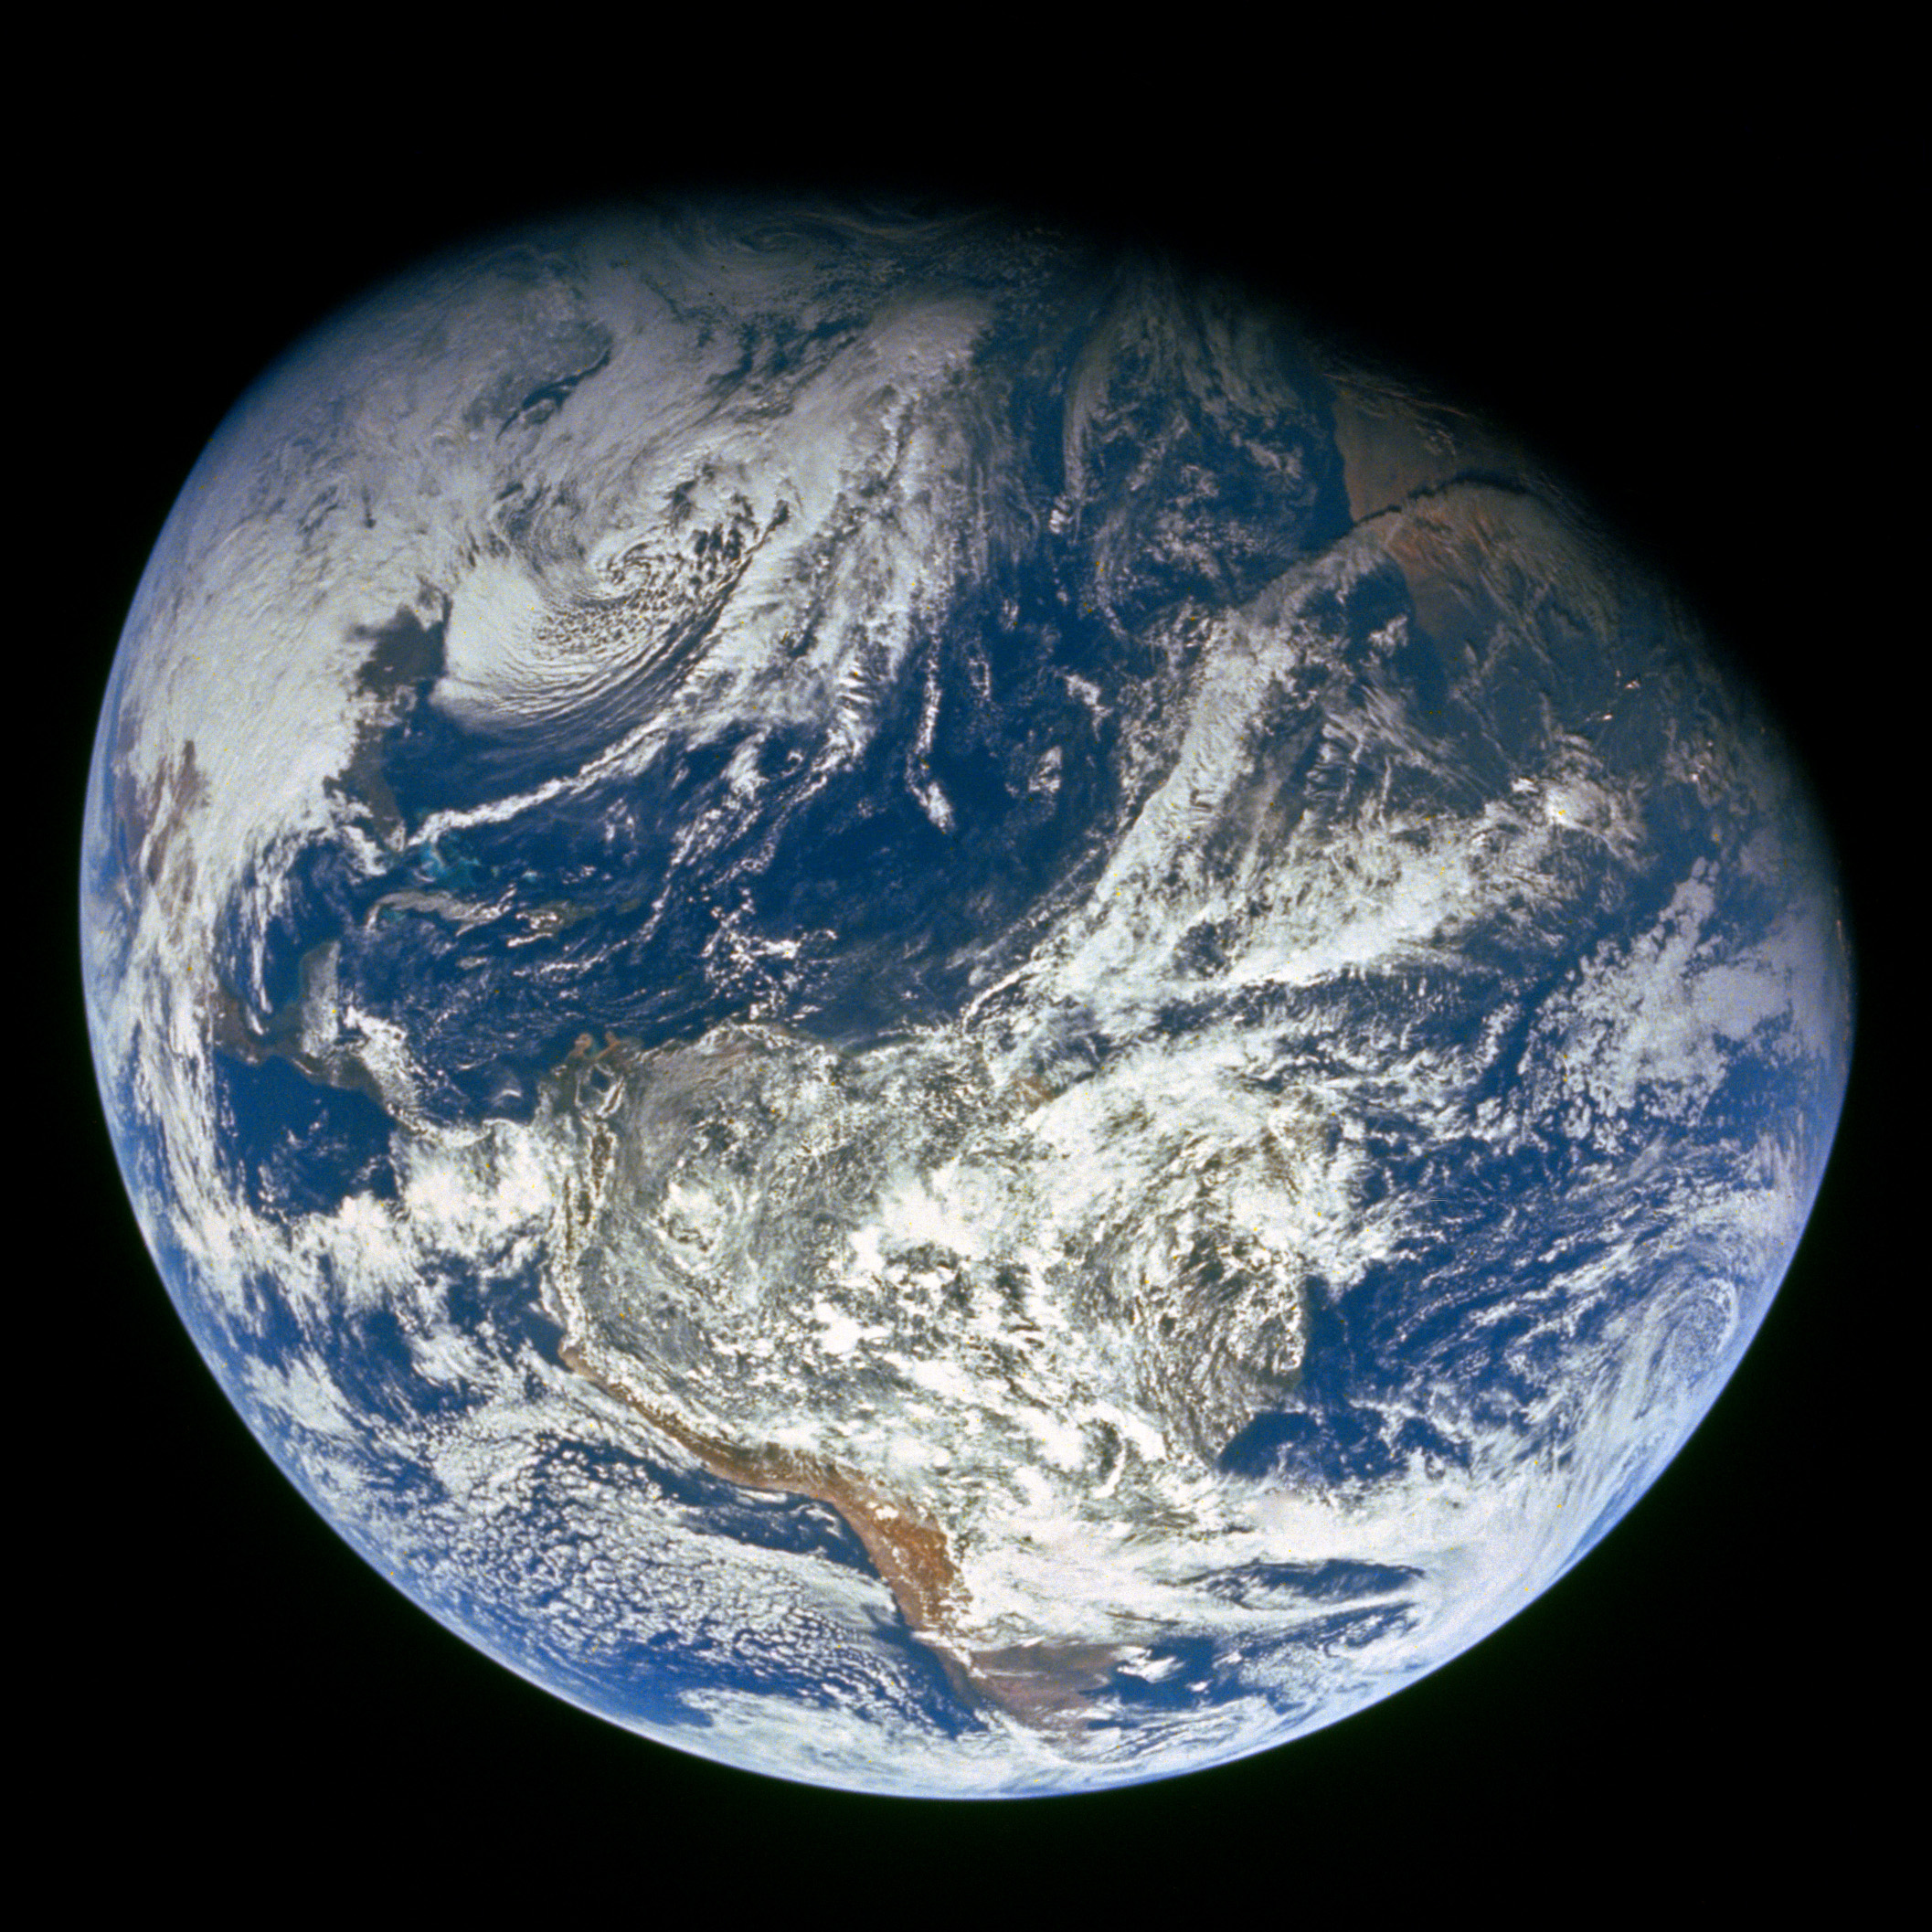 nasa apollo earth images -#main